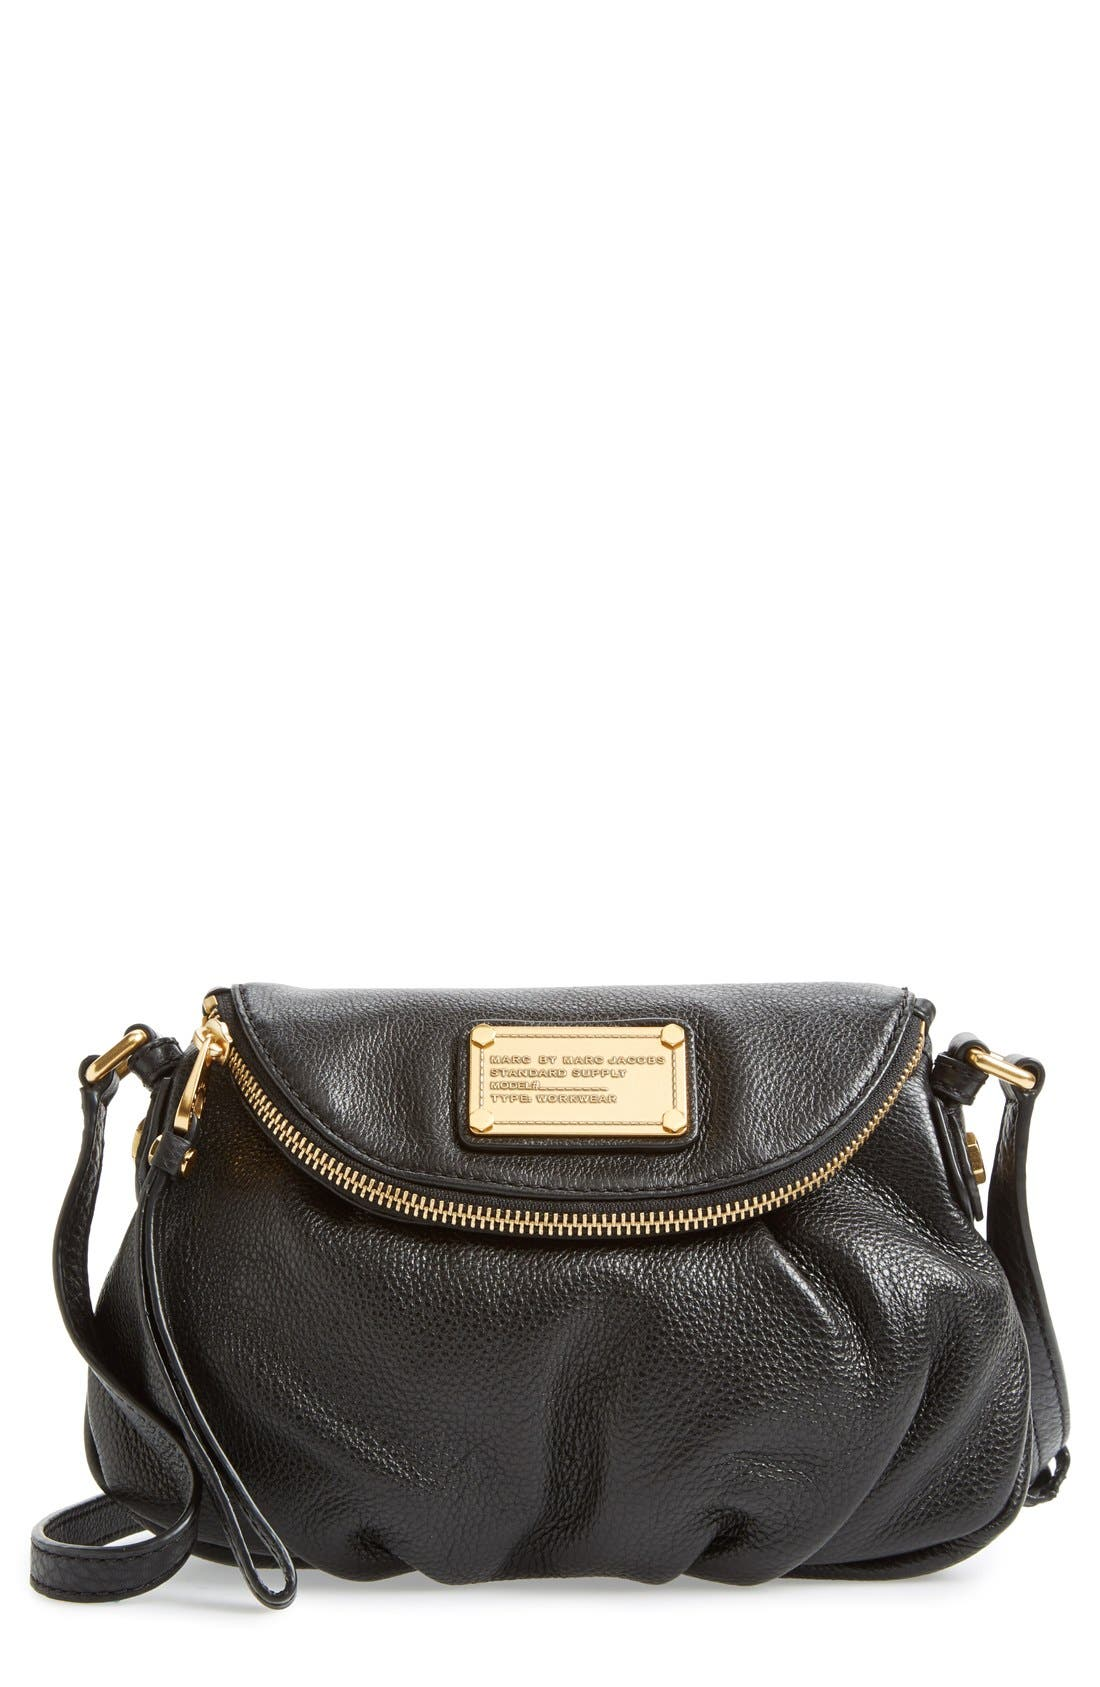 MARC JACOBS, MARC BY MARC JACOBS 'Classic Q Natasha - Mini' Crossbody Flap Bag, Main thumbnail 1, color, 001